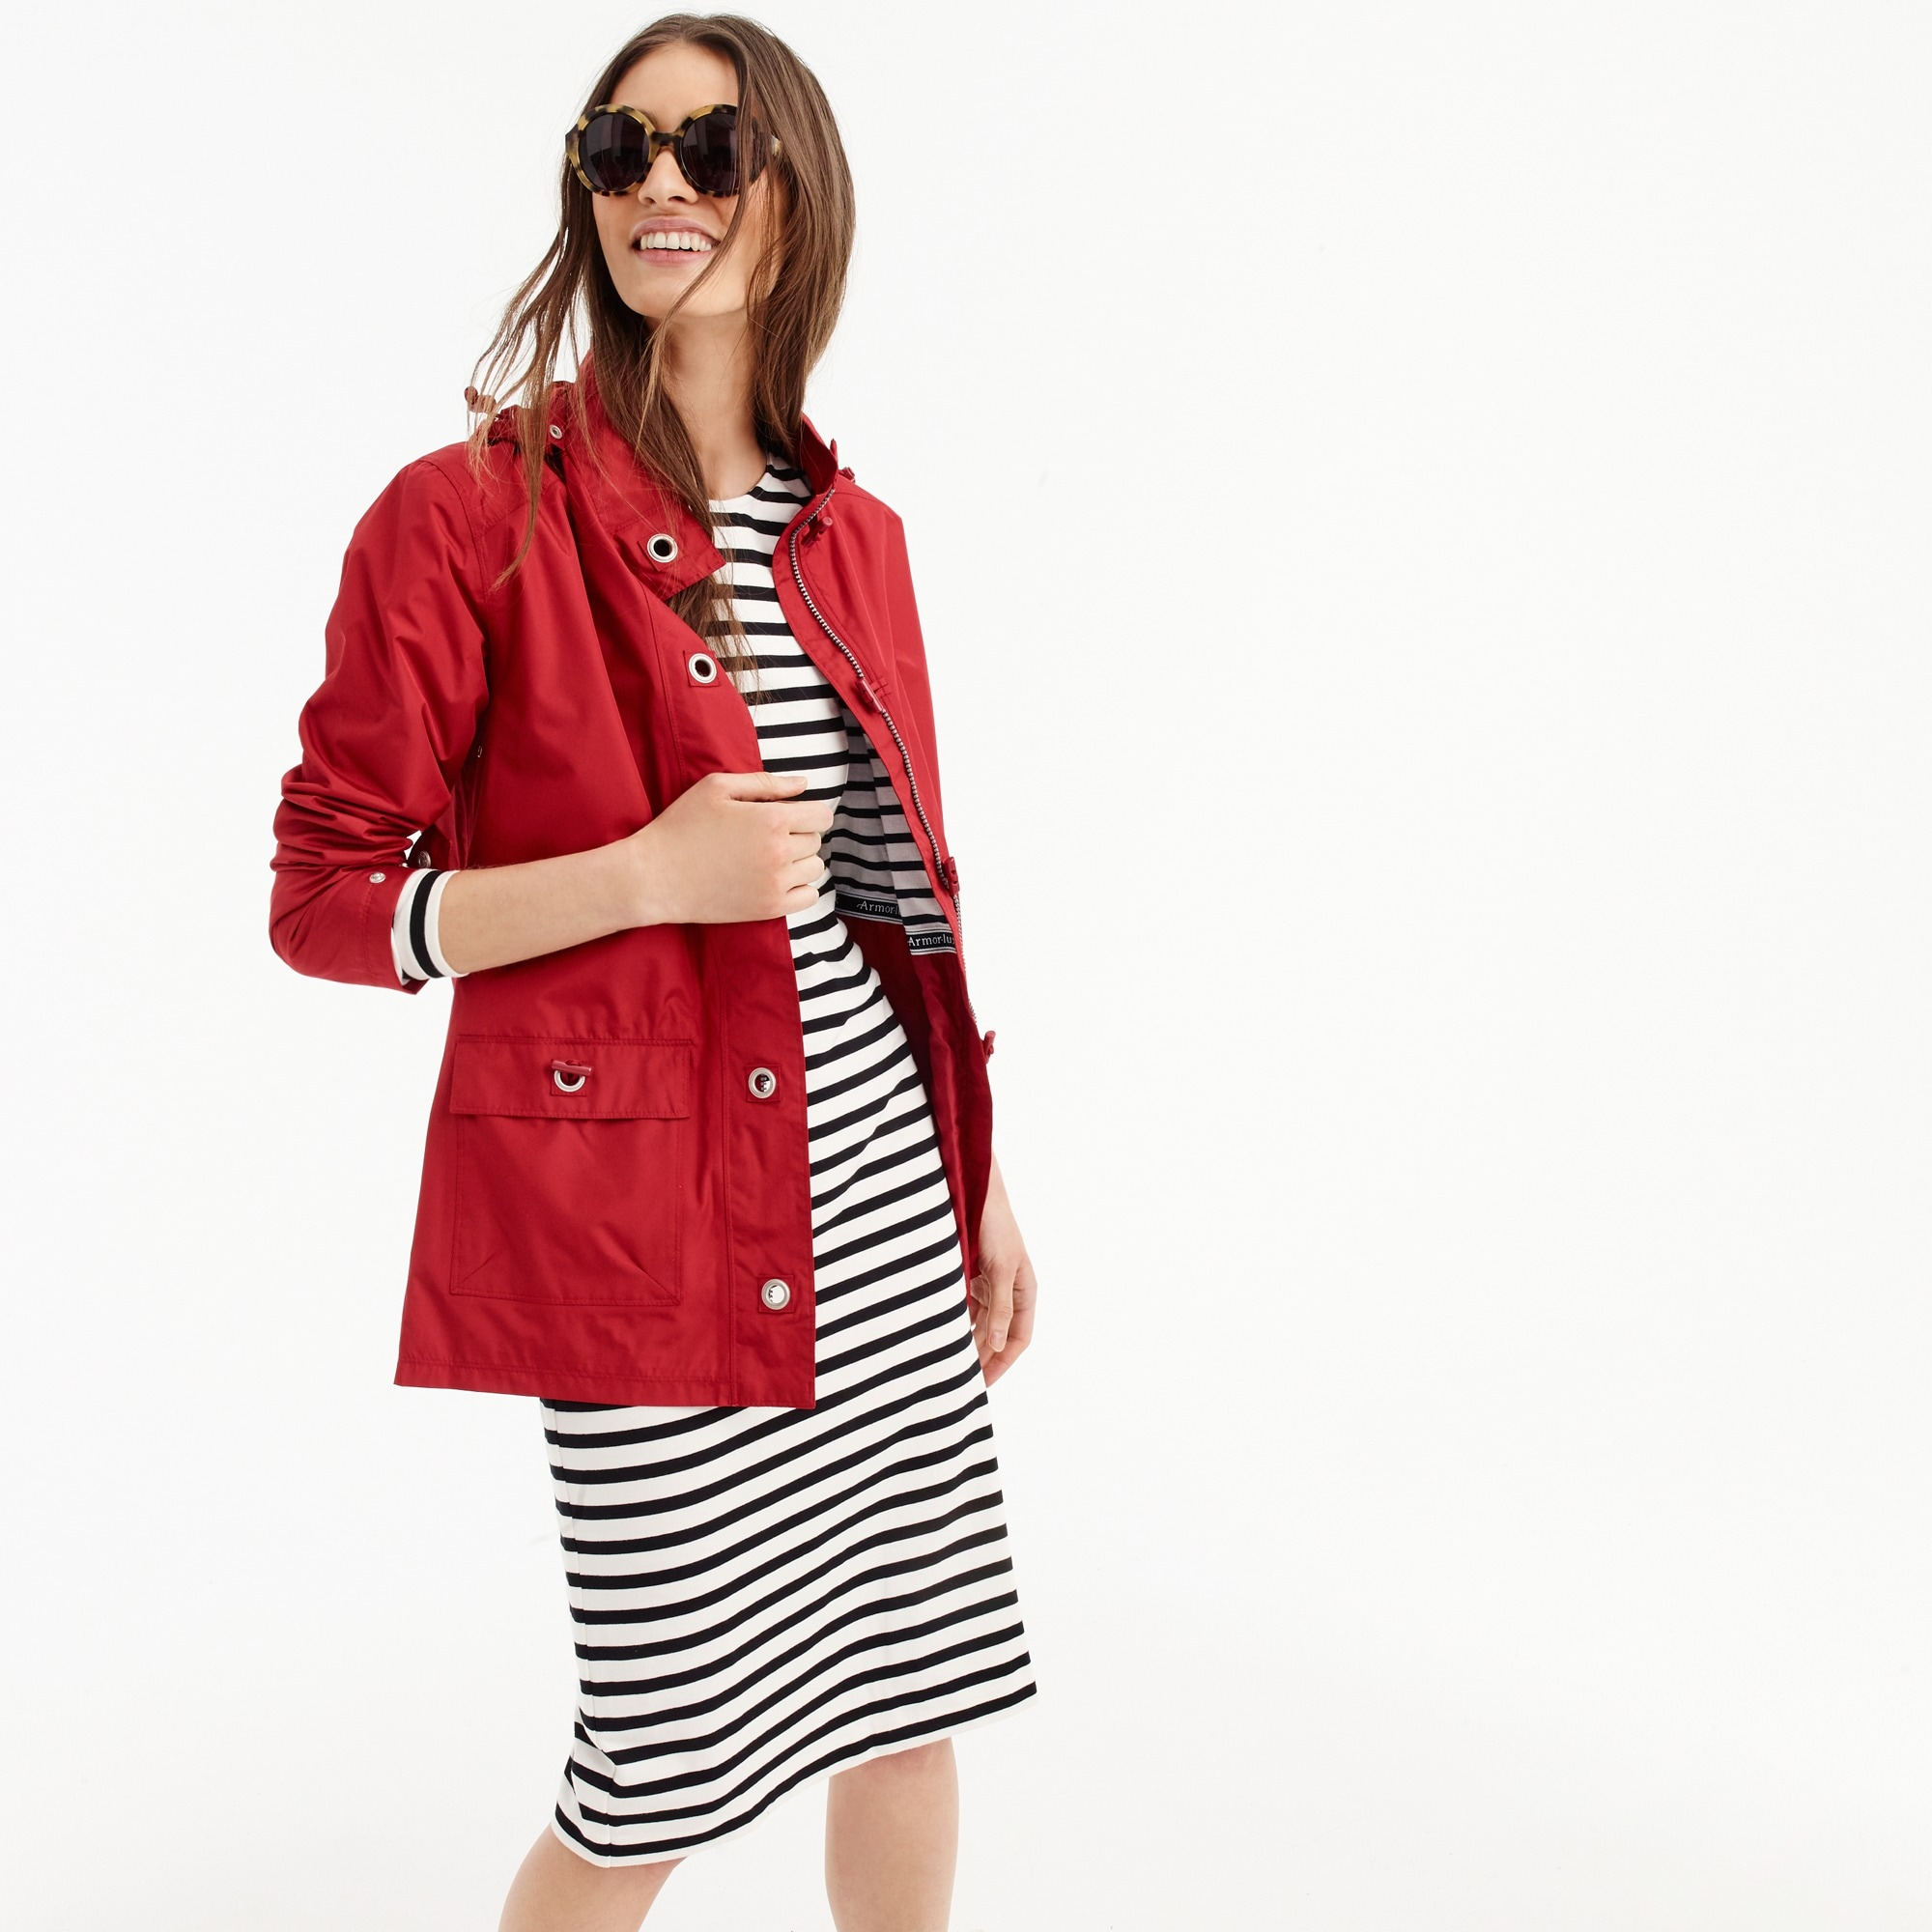 Armor-Lux® for J.Crew raincoat with striped lining women coats & jackets c